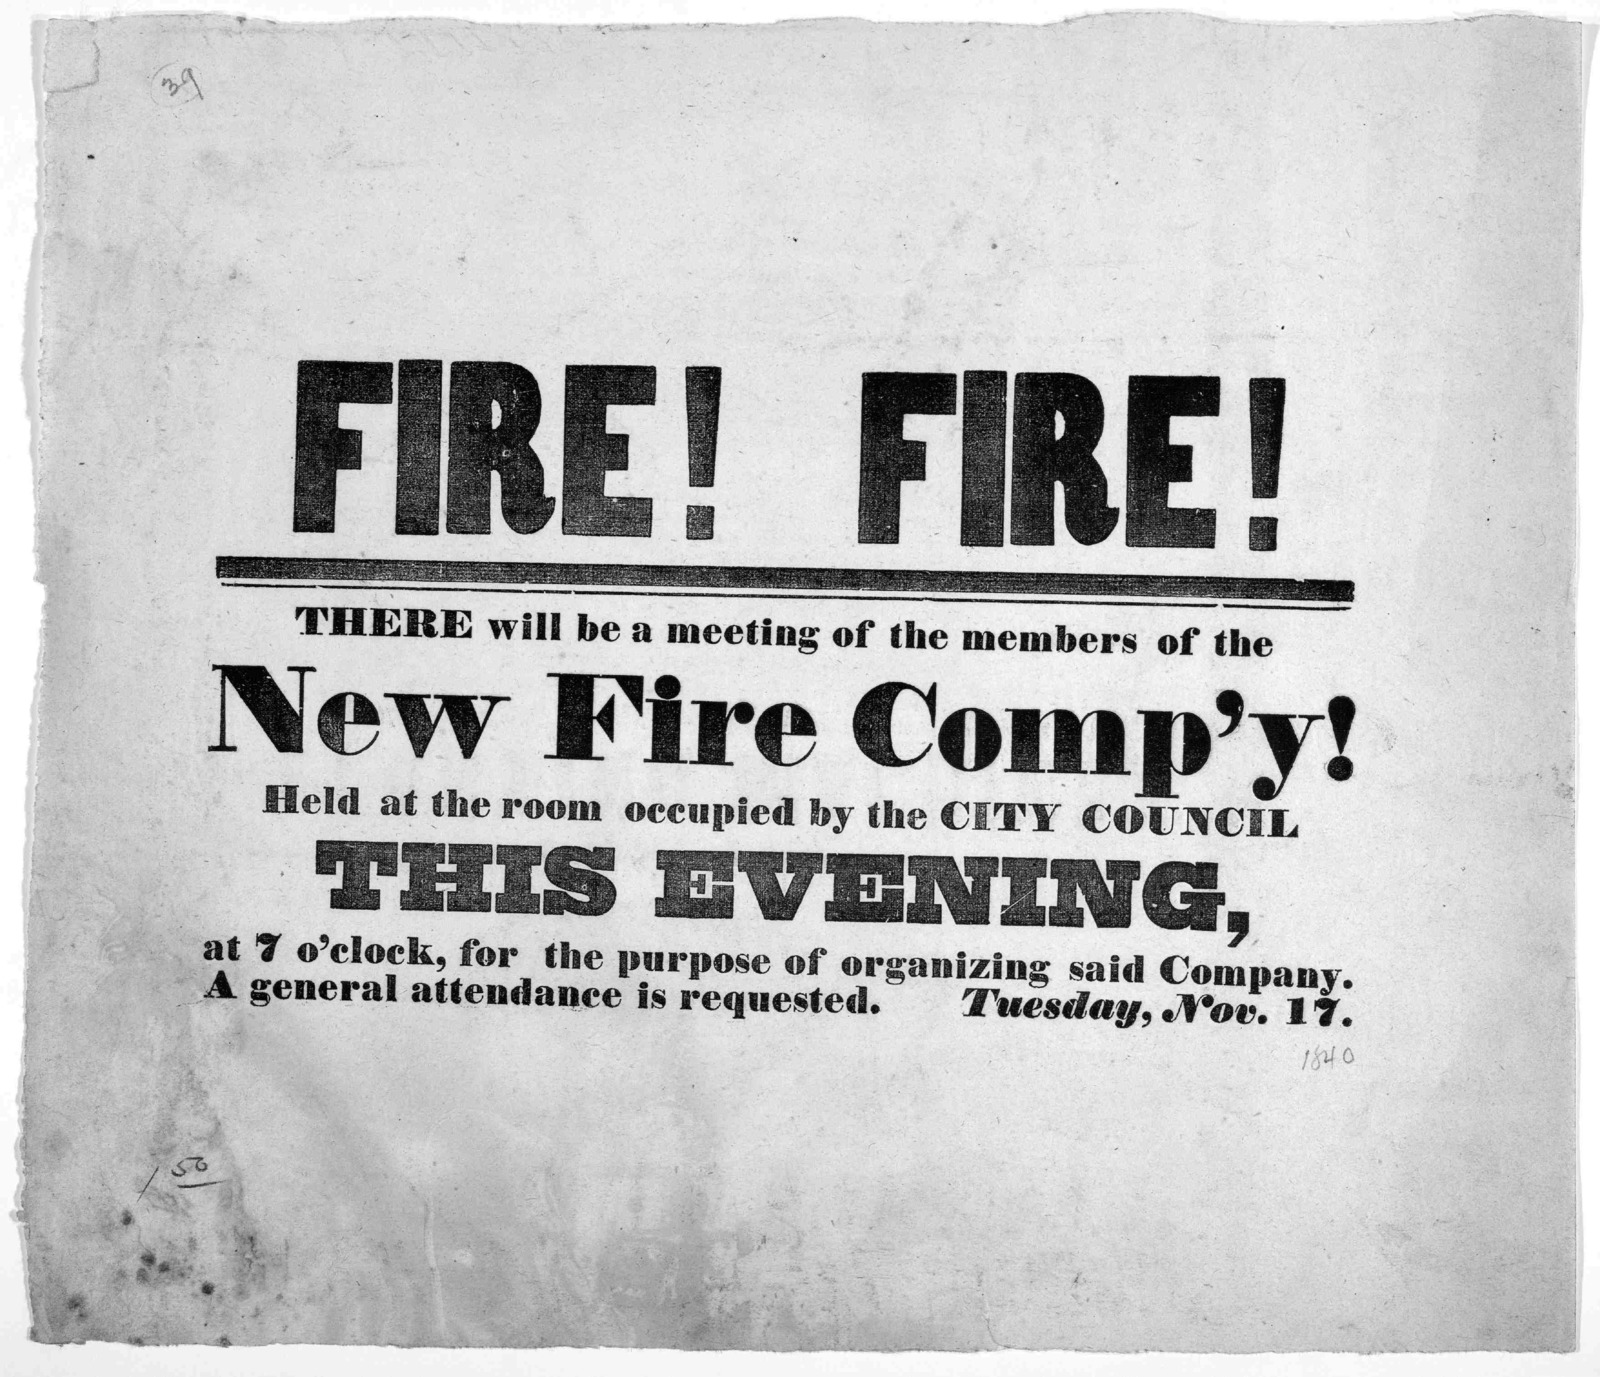 Fire! fire! There will be a meeting of the members of the New Fire comp'y! held at the room now occupied by the City Council this evening, at 7 o'clock, for the purpose of organizing said company. A general attendance is requested. [Alton? Ill.]